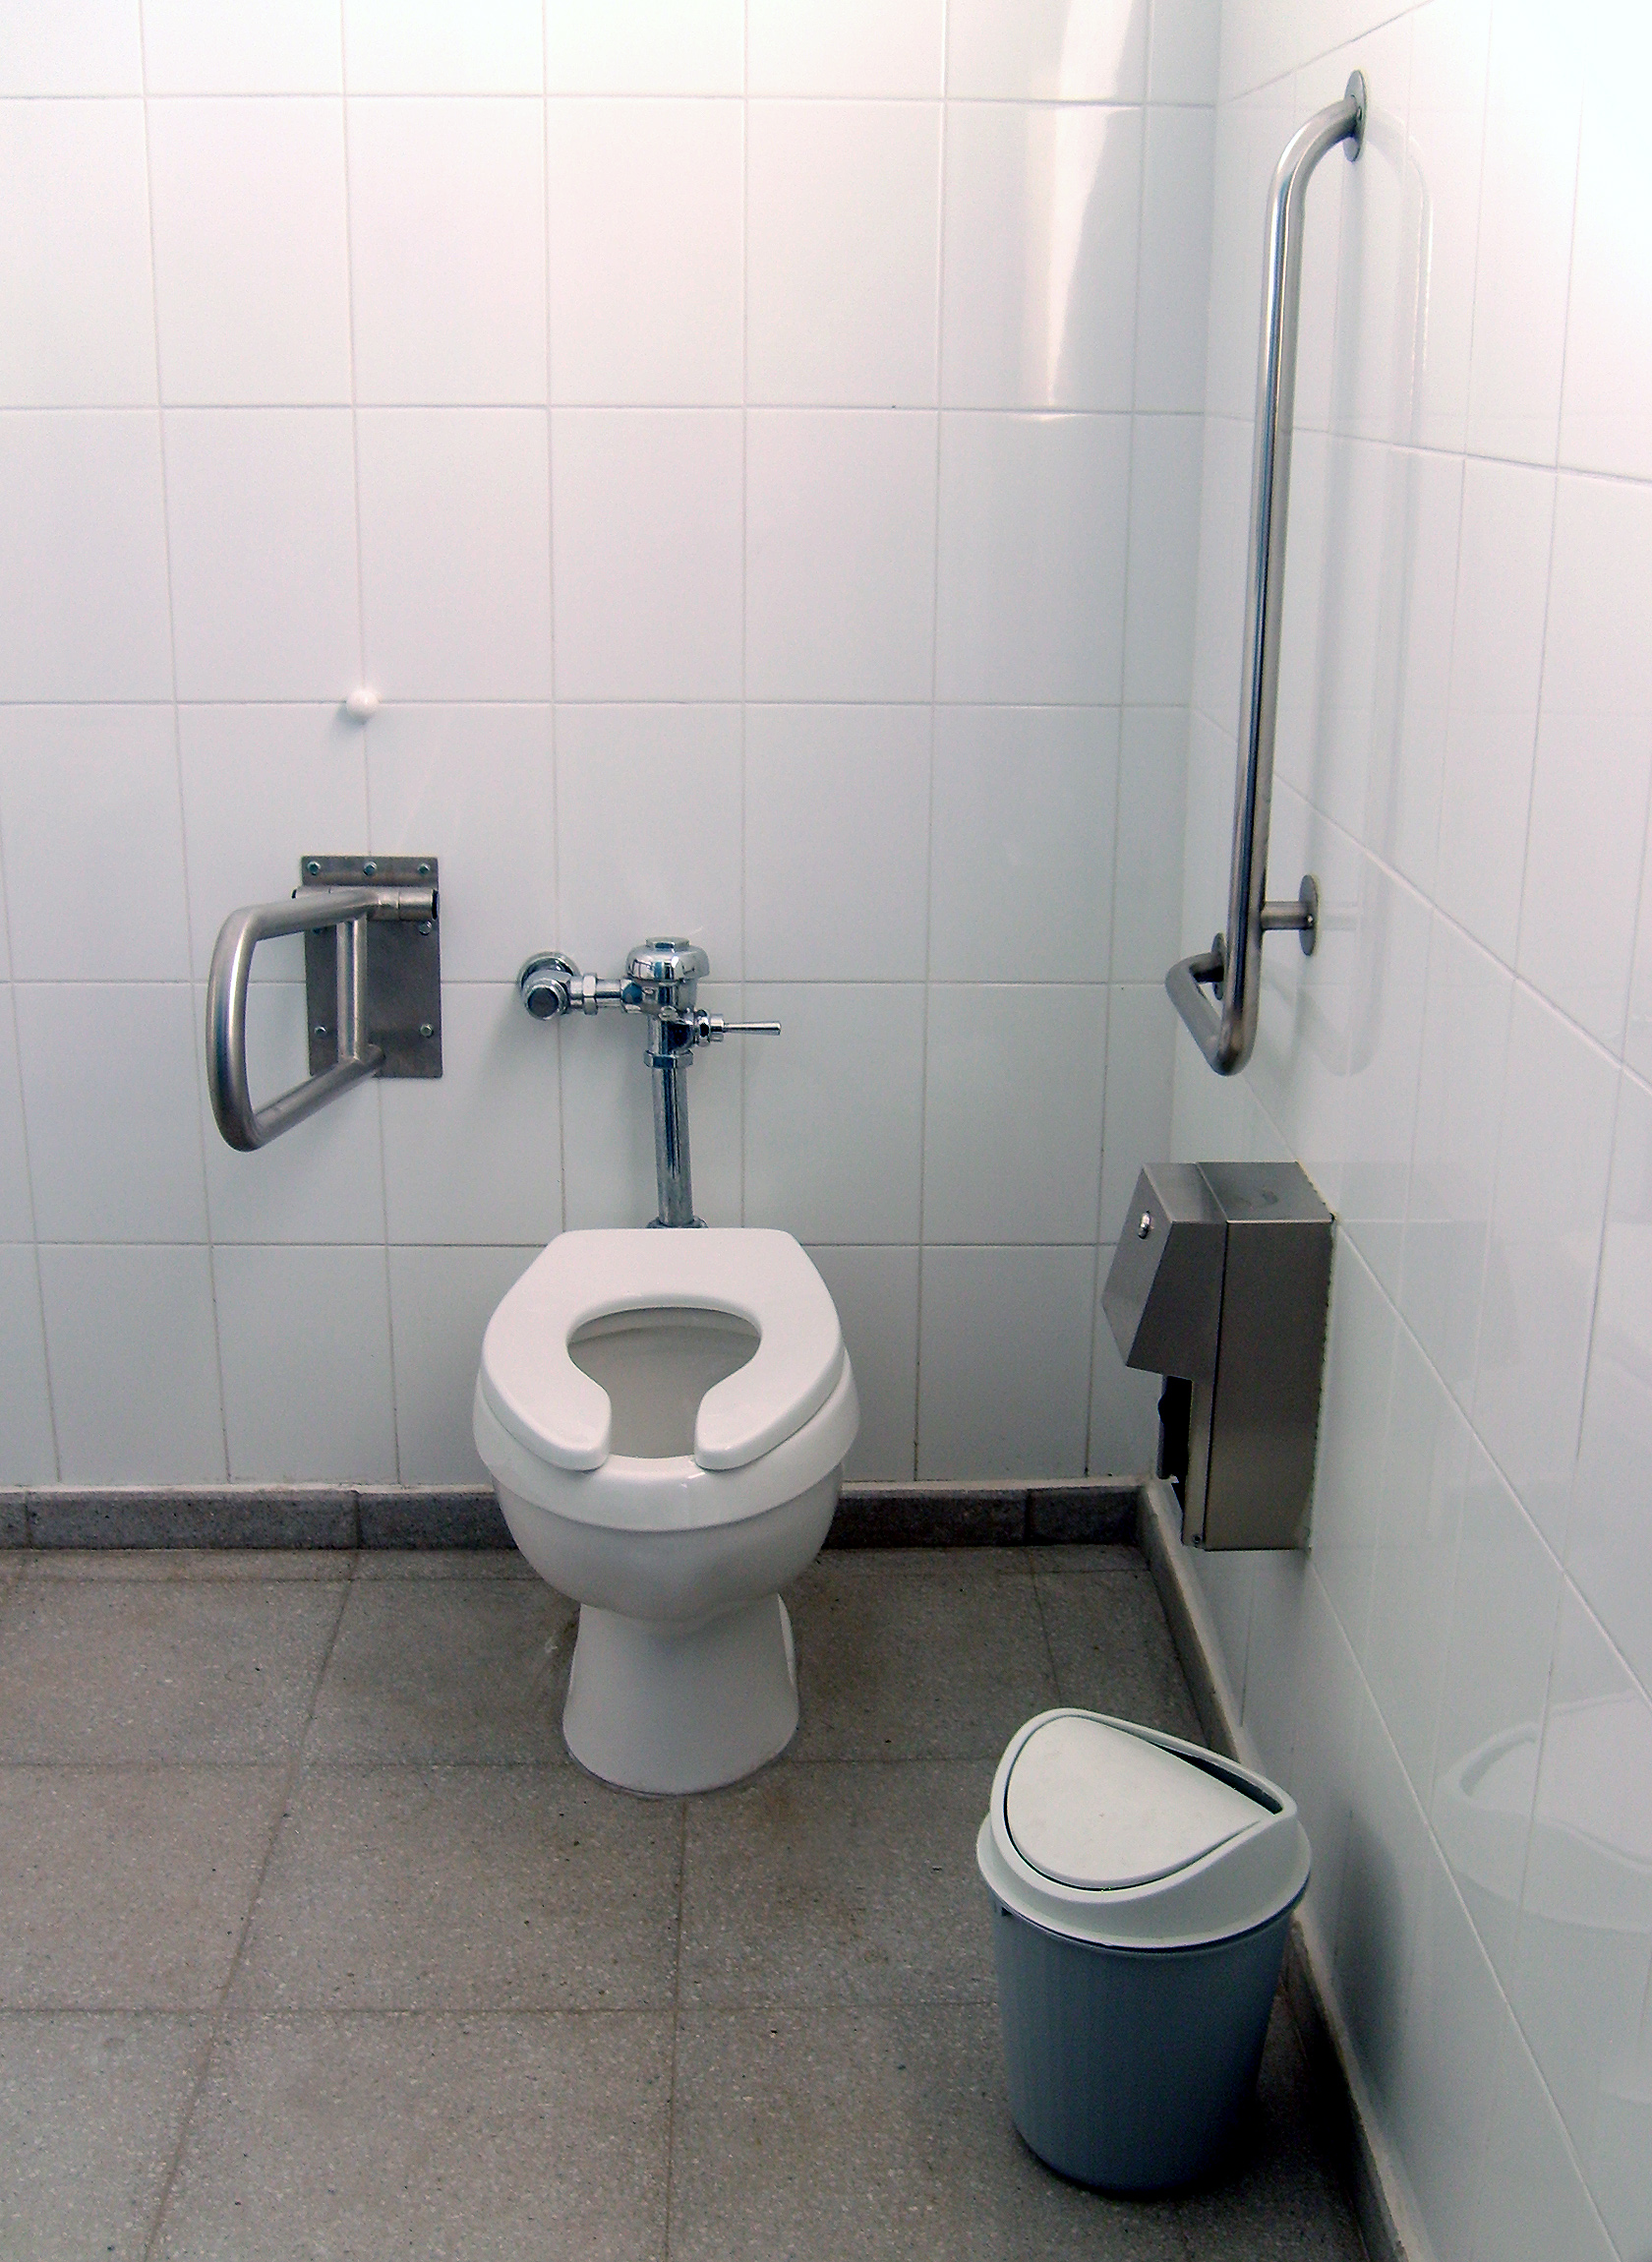 File:Bathroom Disabled People.jpg - Wikimedia Commons